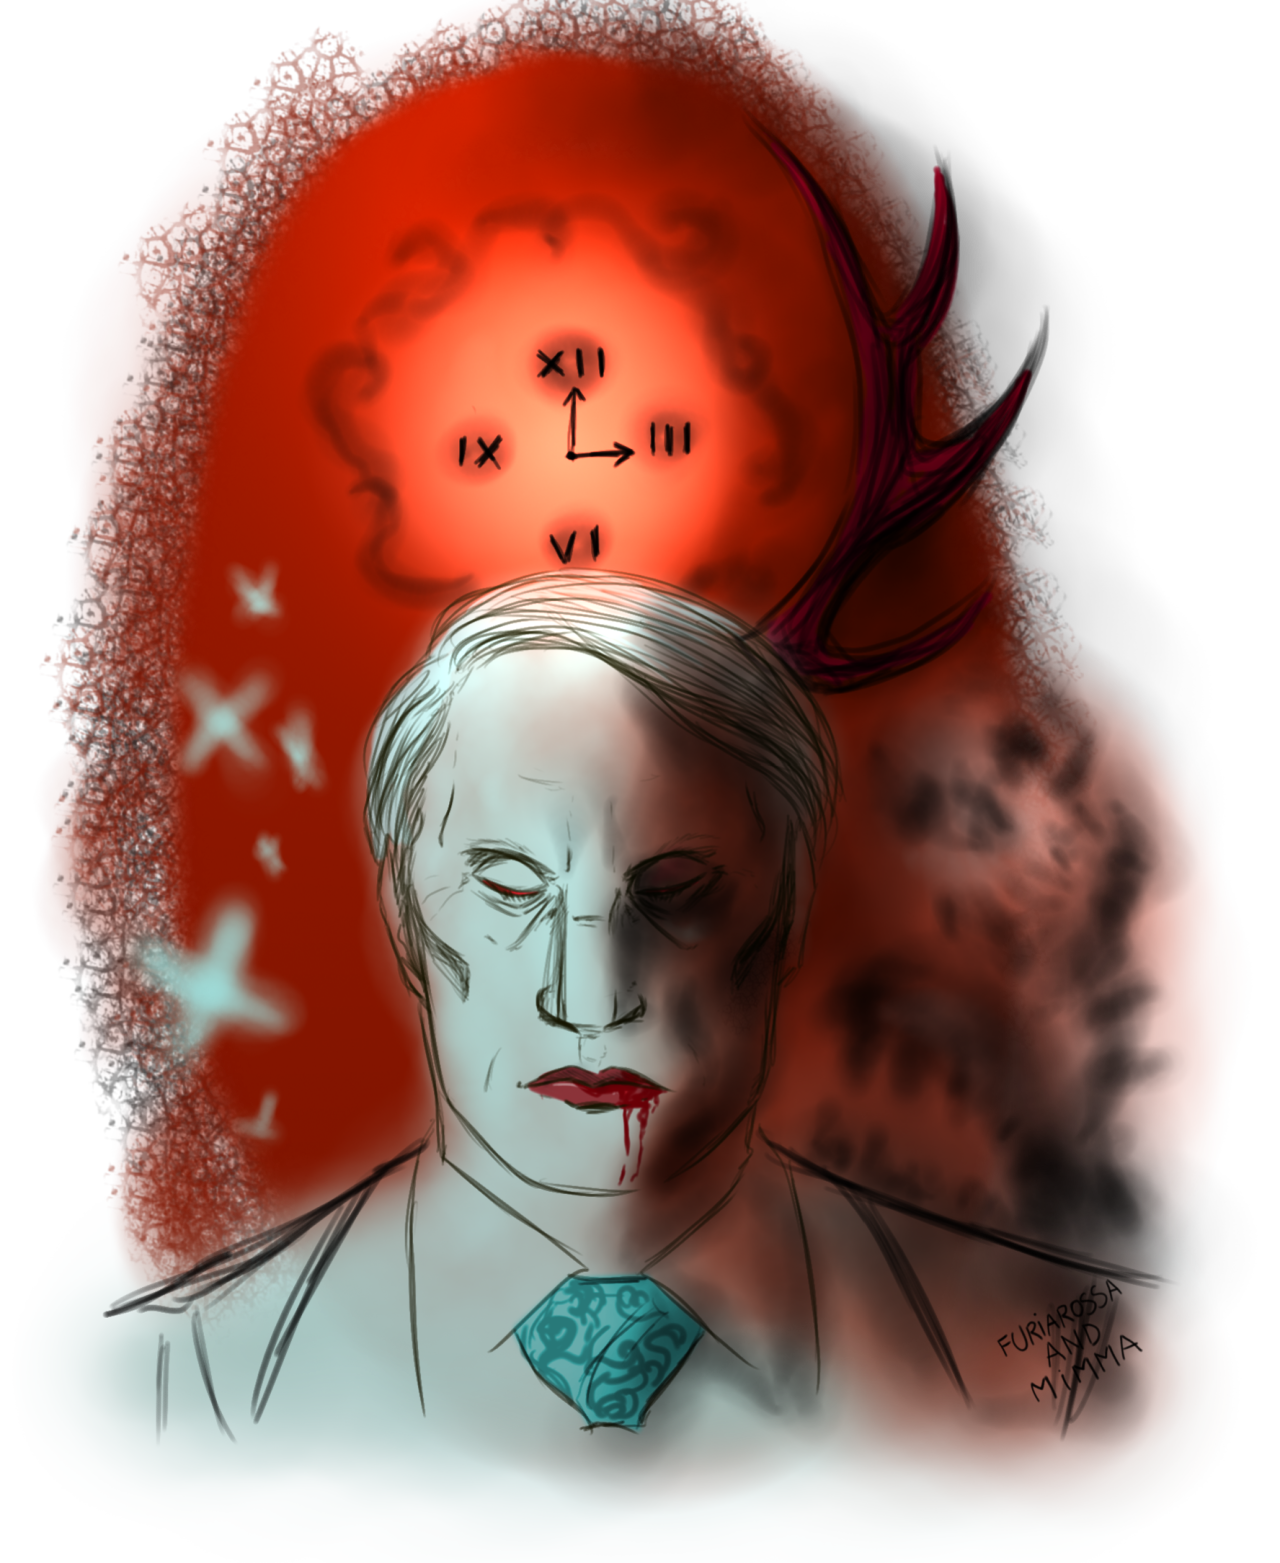 http://hannibalartblog.eu/post/152613985655/ive-had-to-draw-a-conclusion-based-on-what-i